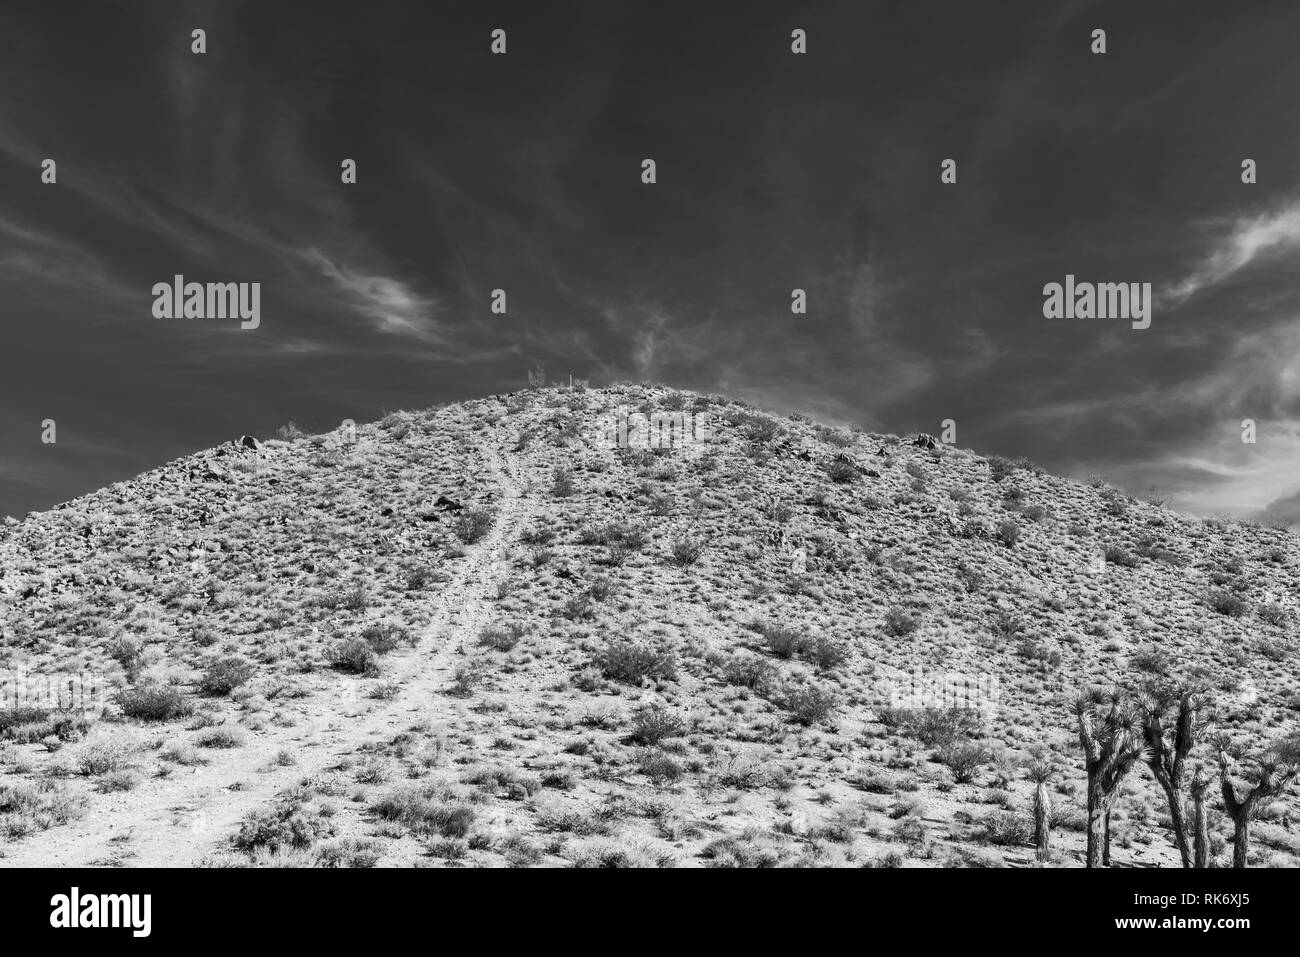 Dirt road leading up to top of desert mountainside under bright blue sky. Black and white. - Stock Image